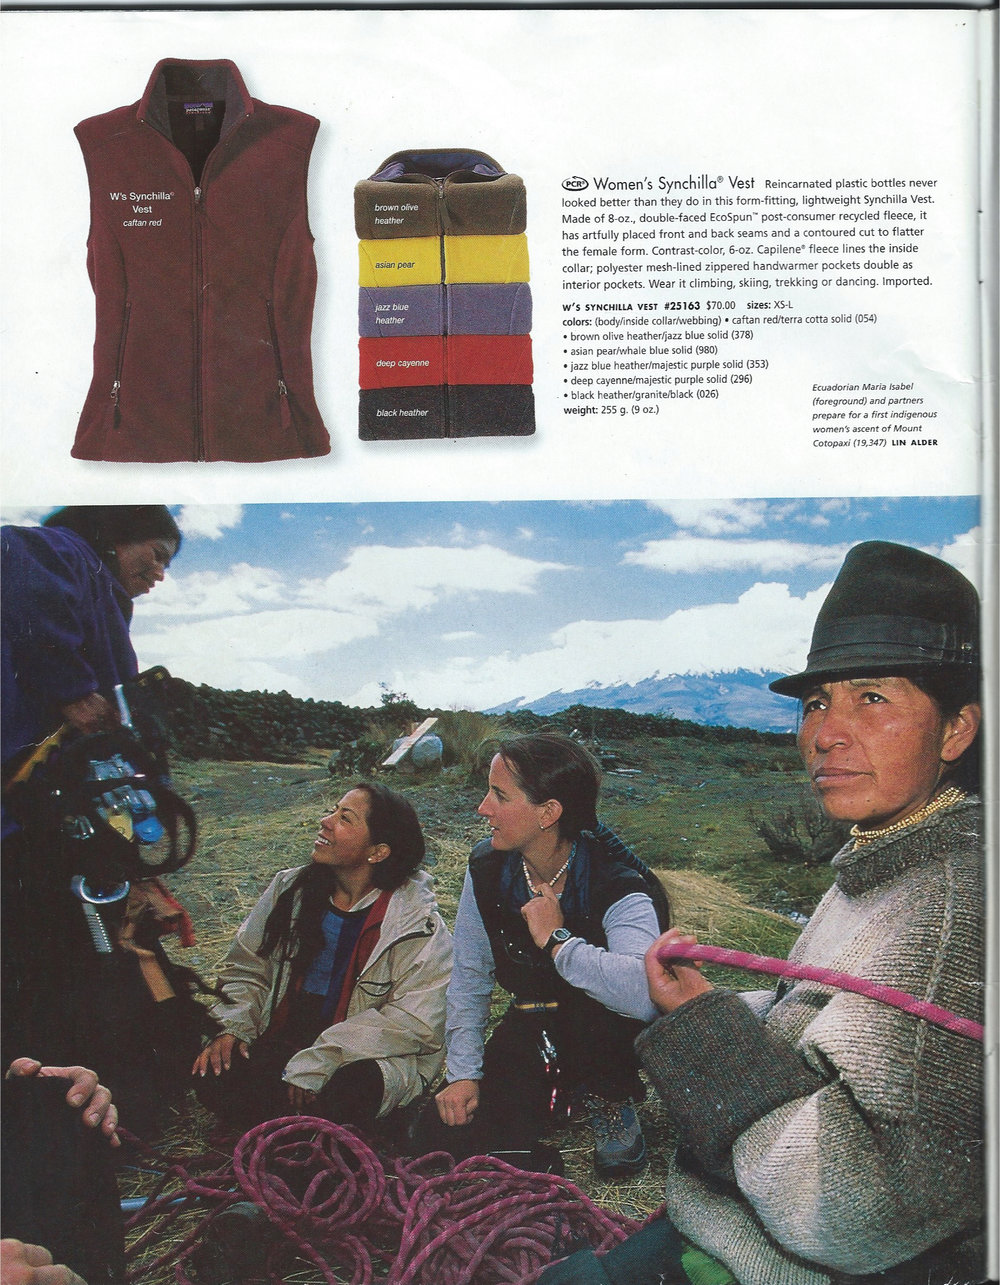 Patagonia graciously sponsored our expedition with clothing to stay warm and comfortable.